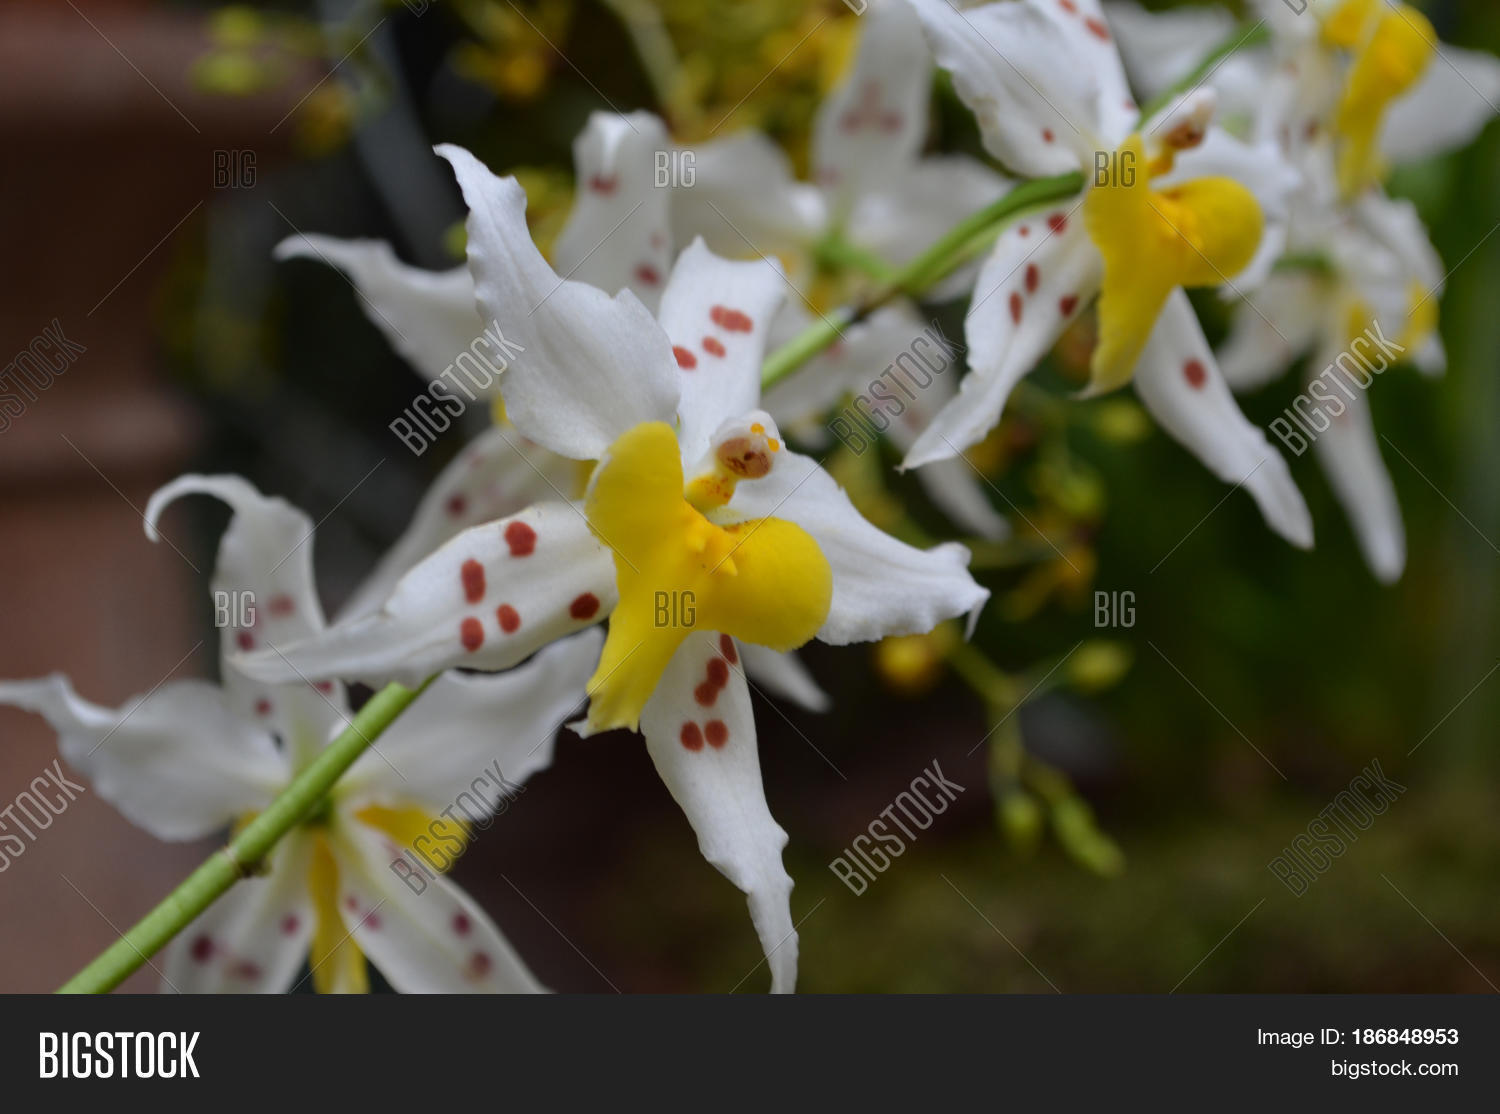 Pretty White Yellow Image Photo Free Trial Bigstock